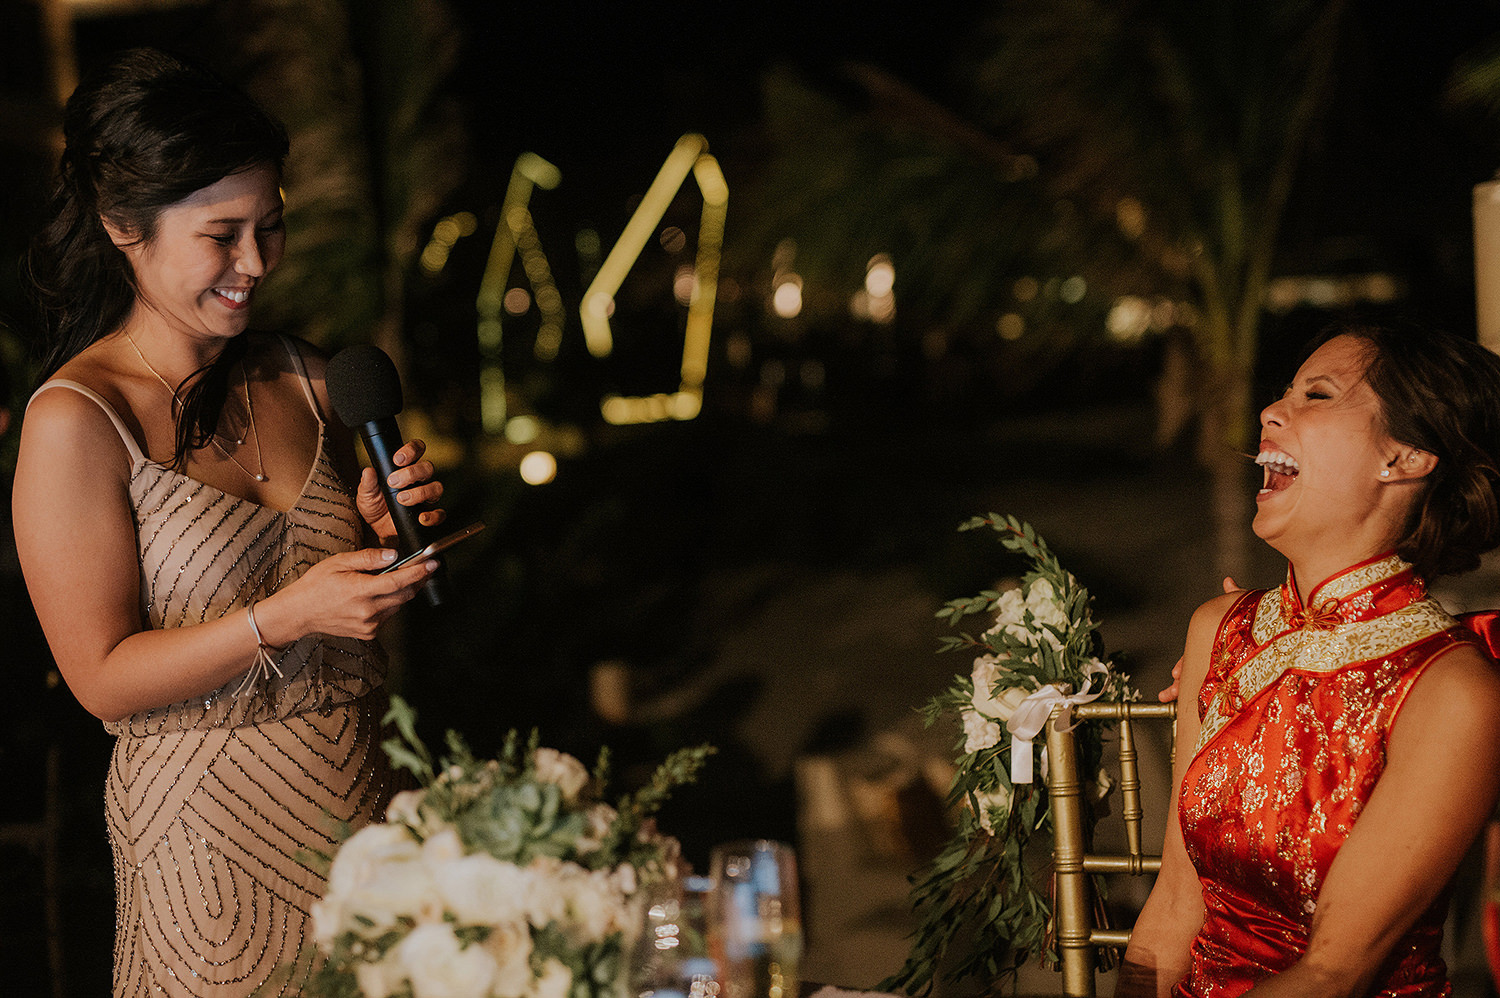 CherylReed_Wedding_Kape_Photography_WeddingPhotography_Mexico_Boda_Fotografia_Royalton_Hideway_Cancun_RivieraMaya_PlayadelCarmen_Beach_676FB_BLOG.jpg